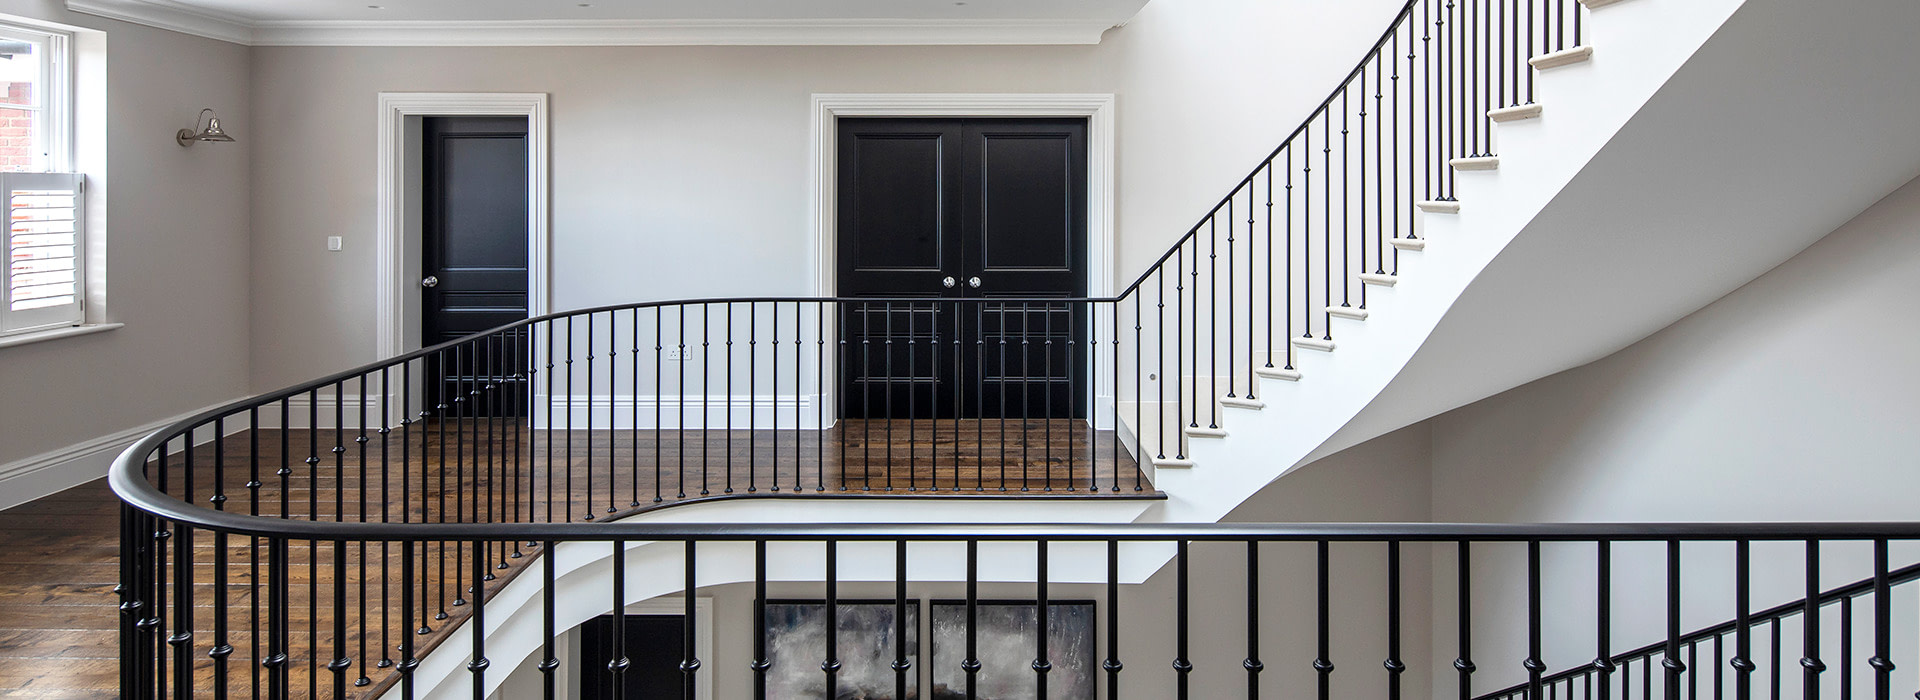 Wrought iron staircase with Knightsbridge interior doors